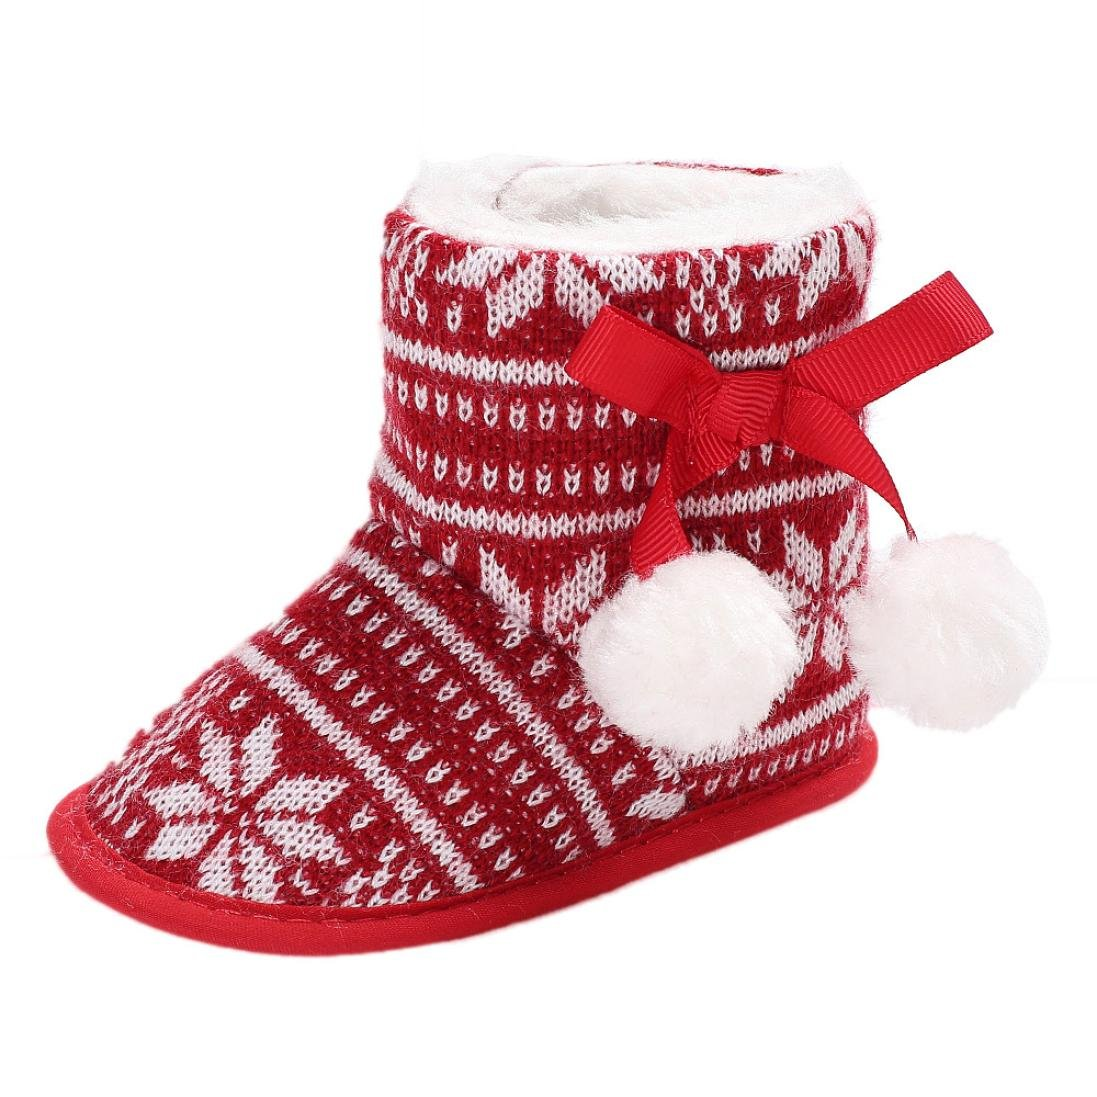 WARMSHOP Toddler Boots Christmas Ball Soft Sole Anti-slip Warm Crib Shoes